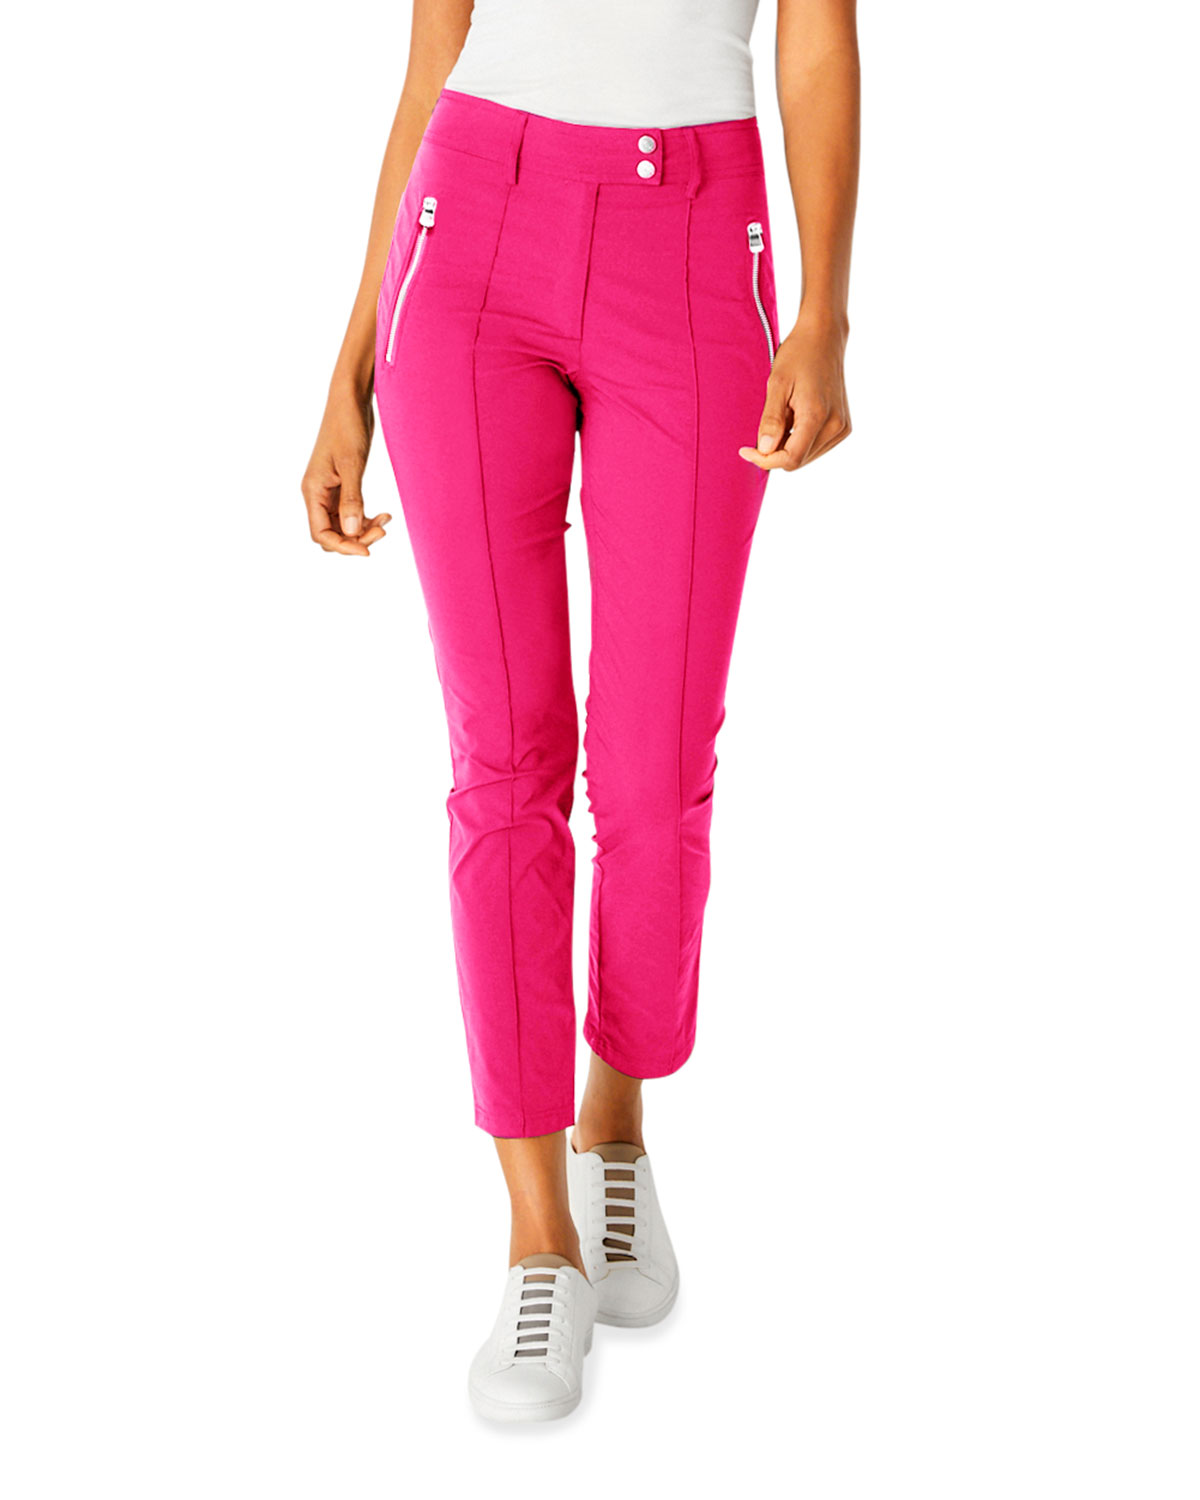 Peggy Suva Curvy-Leg Ankle Pants w/ Zippers